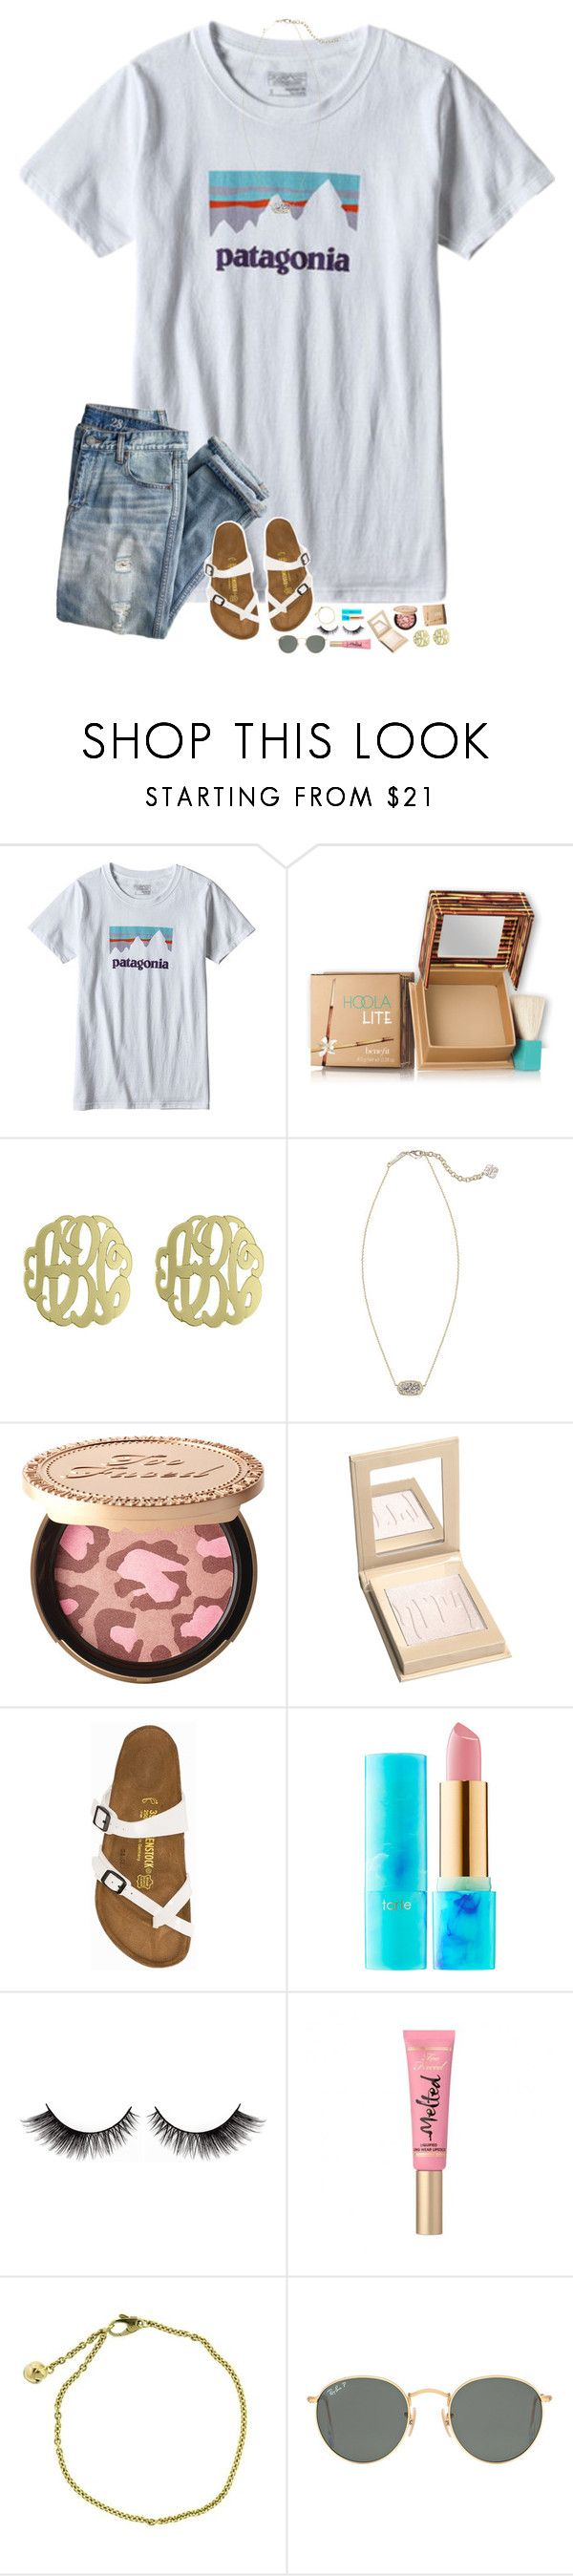 """probably getting braces today......"" by hopemarlee ❤ liked on Polyvore featuring Patagonia, J.Crew, Hoola, Initial Reaction, Kendra Scott, Too Faced Cosmetics, Birkenstock, tarte, Cartier and Ray-Ban"